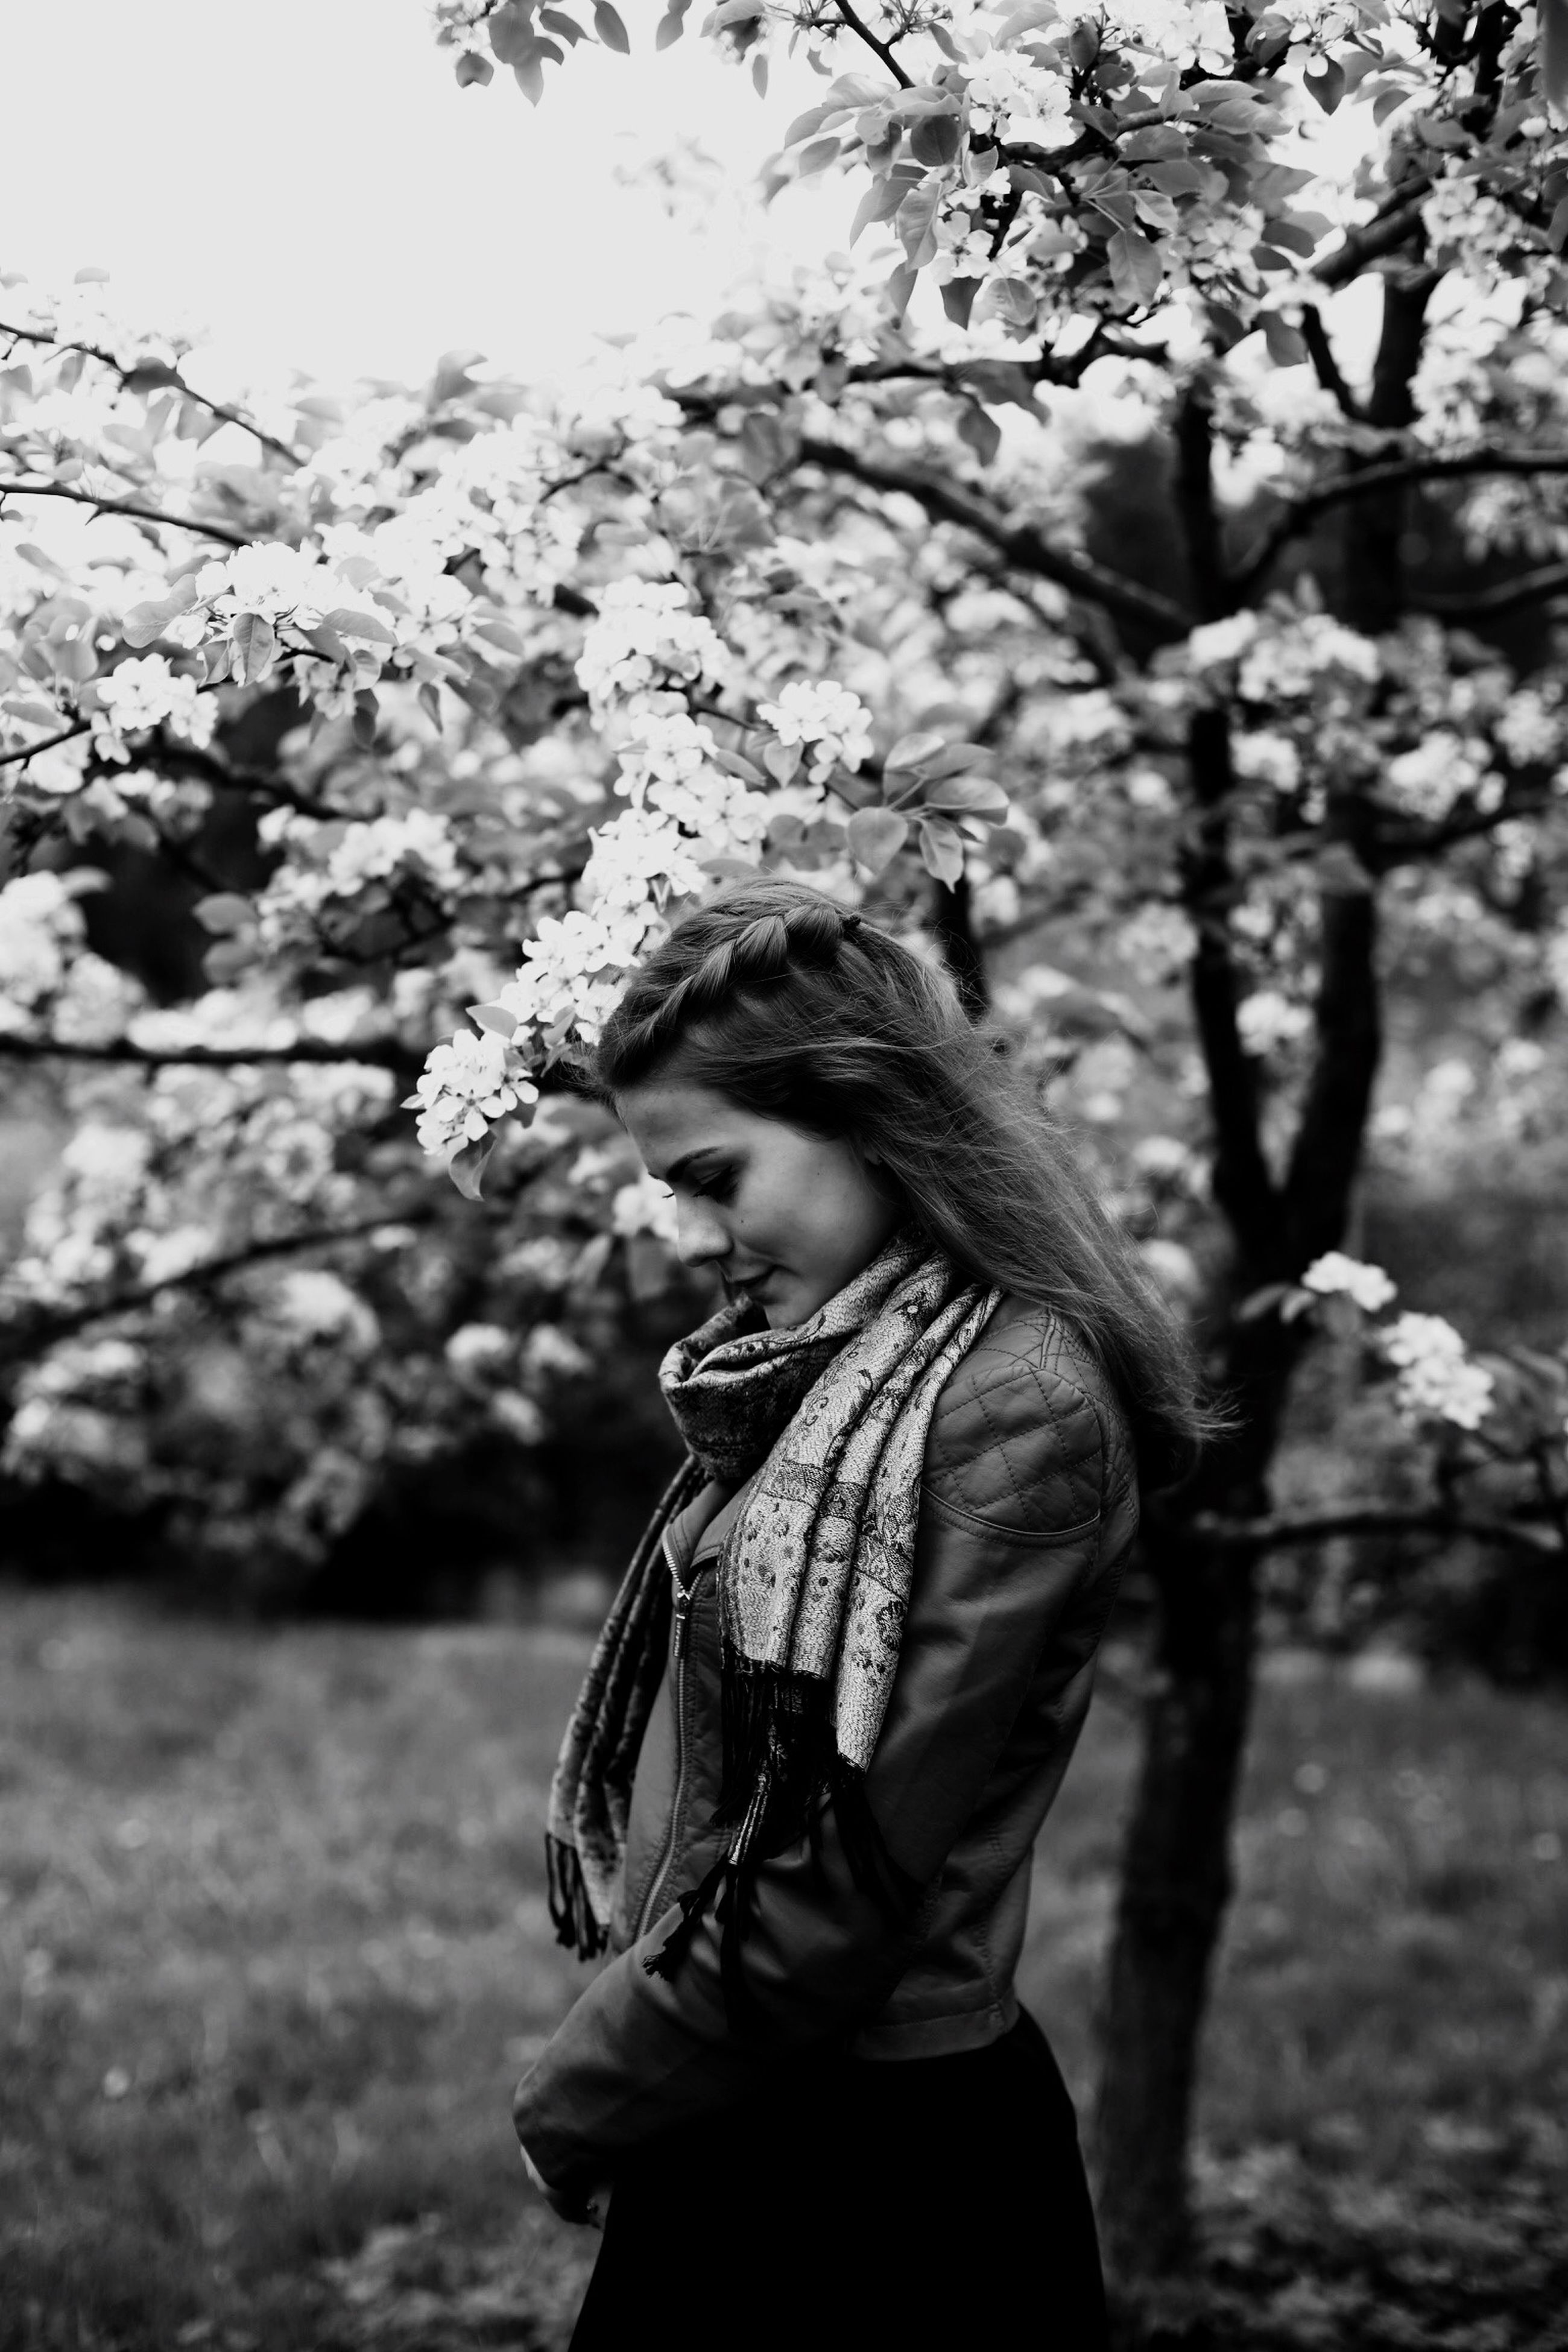 lifestyles, tree, leisure activity, young adult, focus on foreground, person, casual clothing, young women, side view, branch, standing, holding, looking away, three quarter length, nature, park - man made space, waist up, day